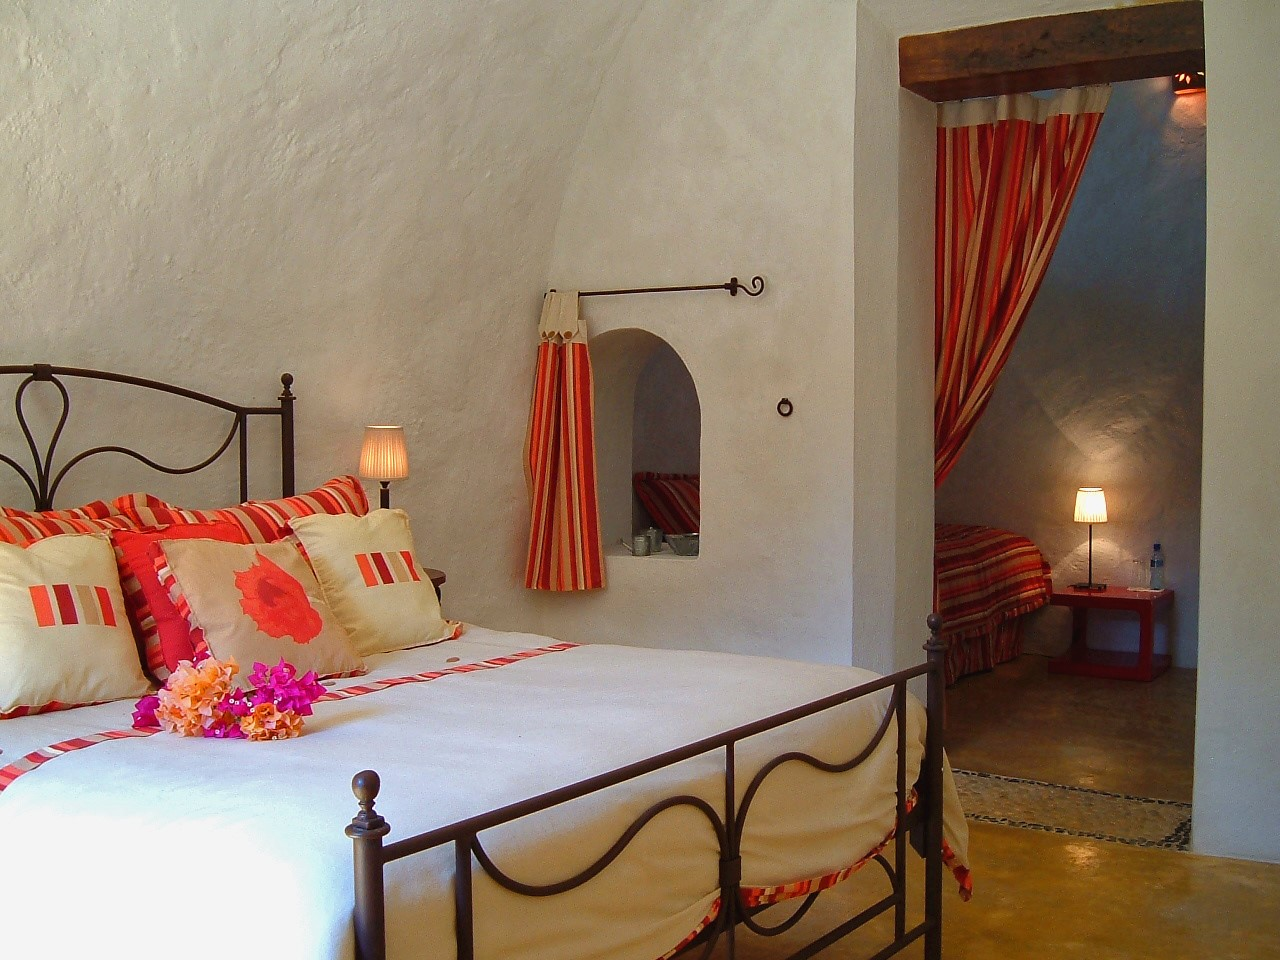 Room at Hacienda Santa Cruz